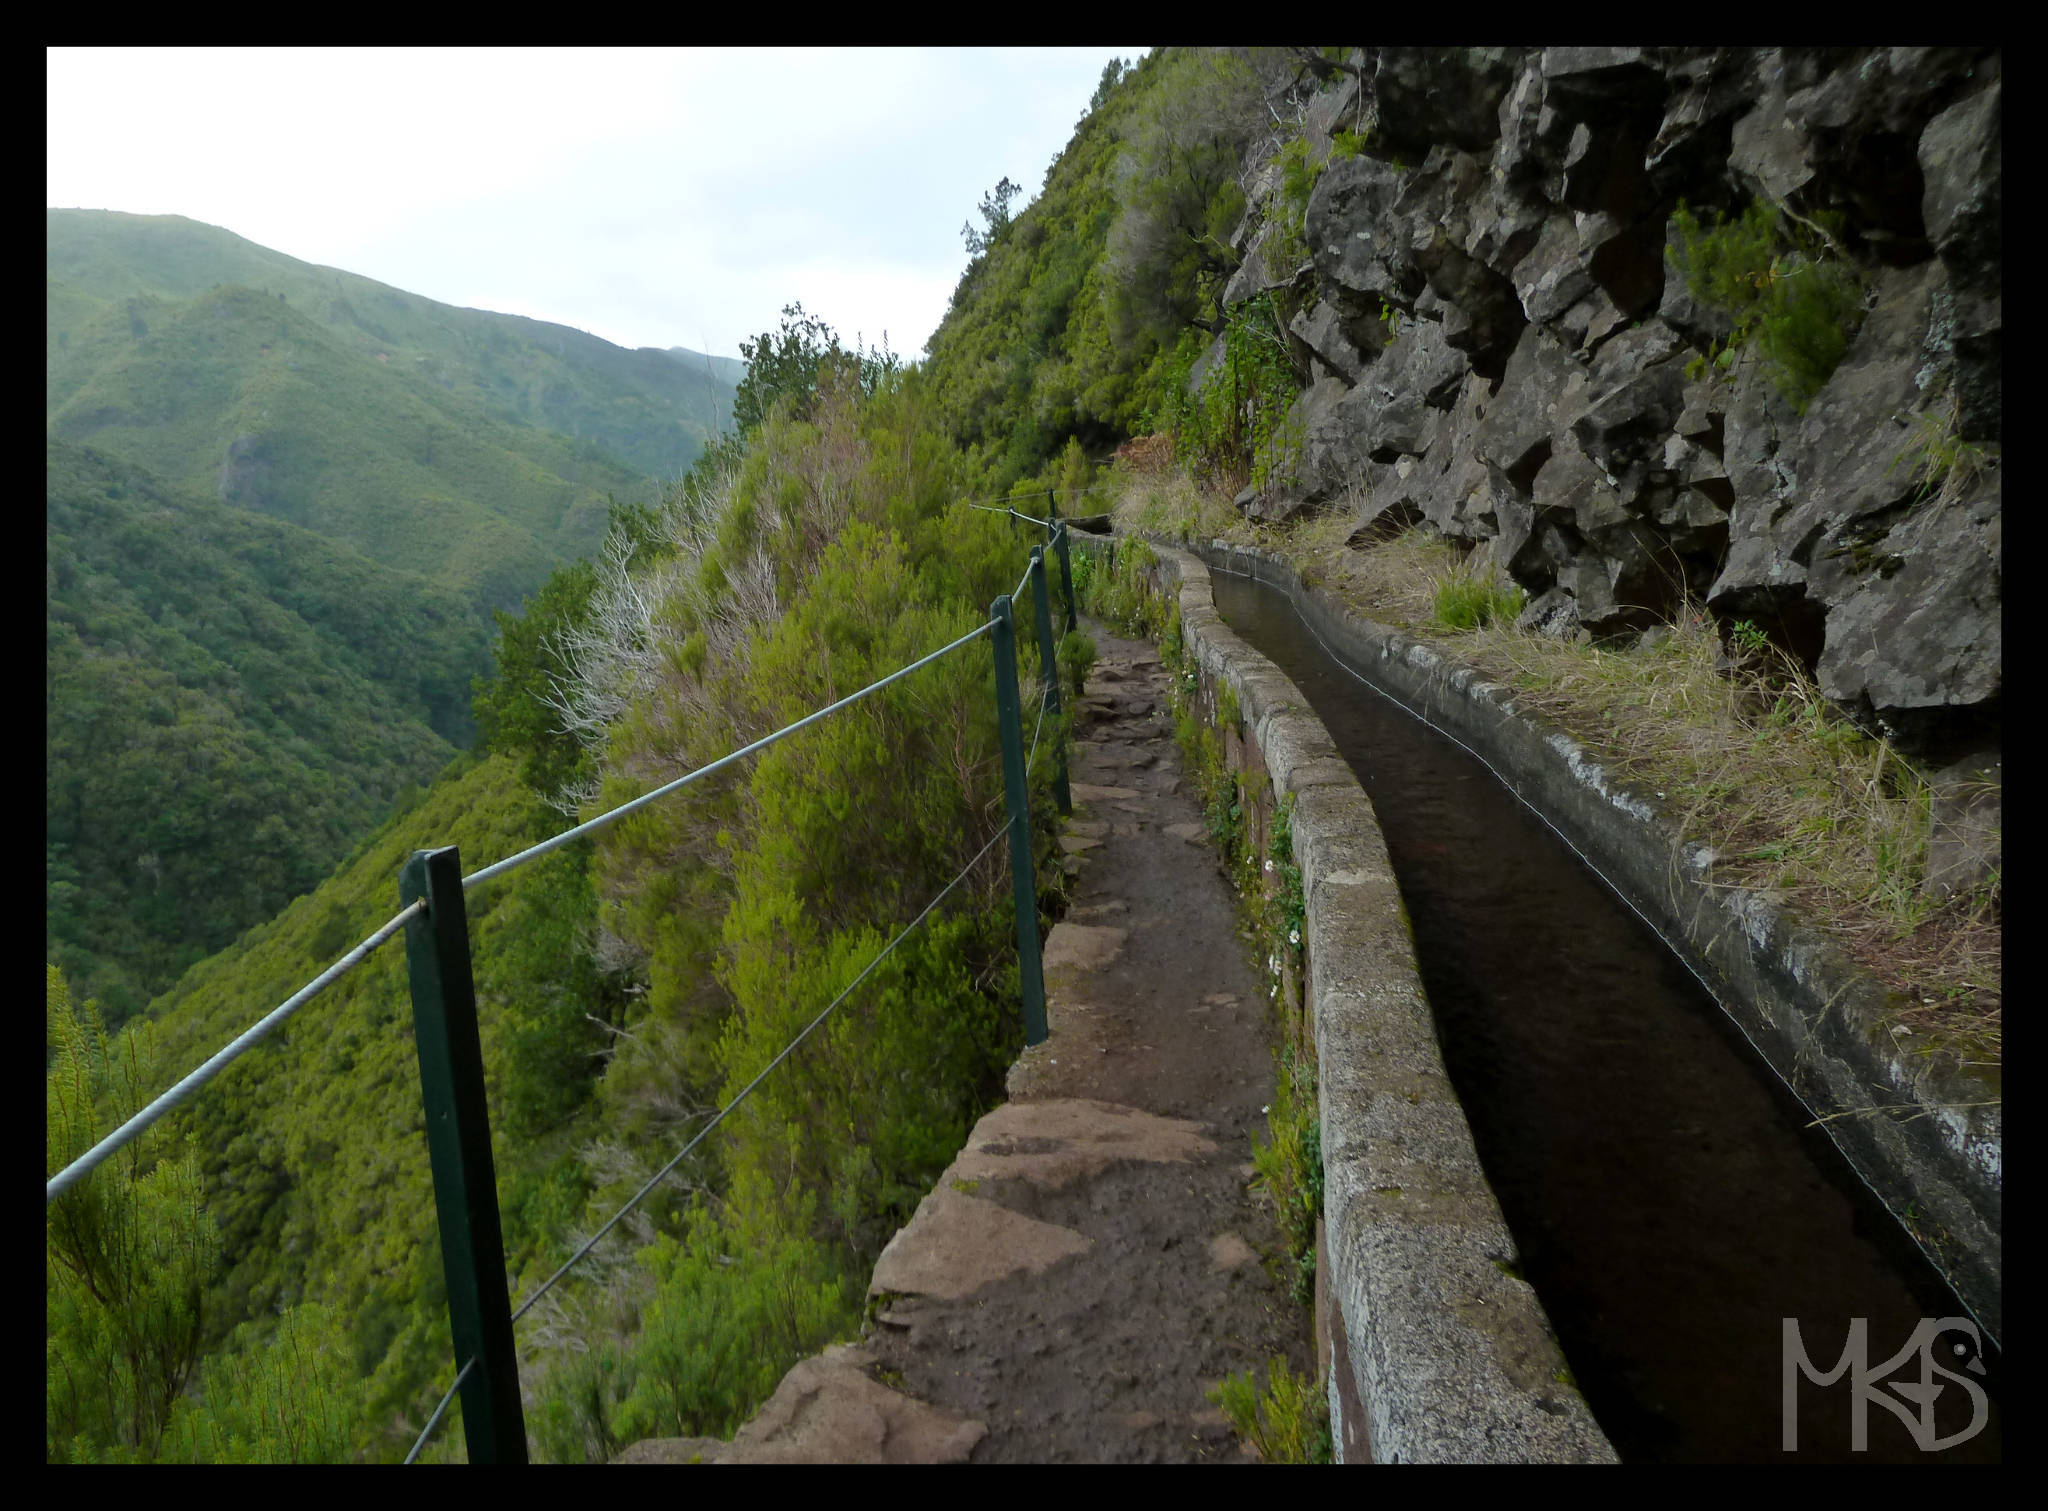 Levada in Paul da Serra, Madeira